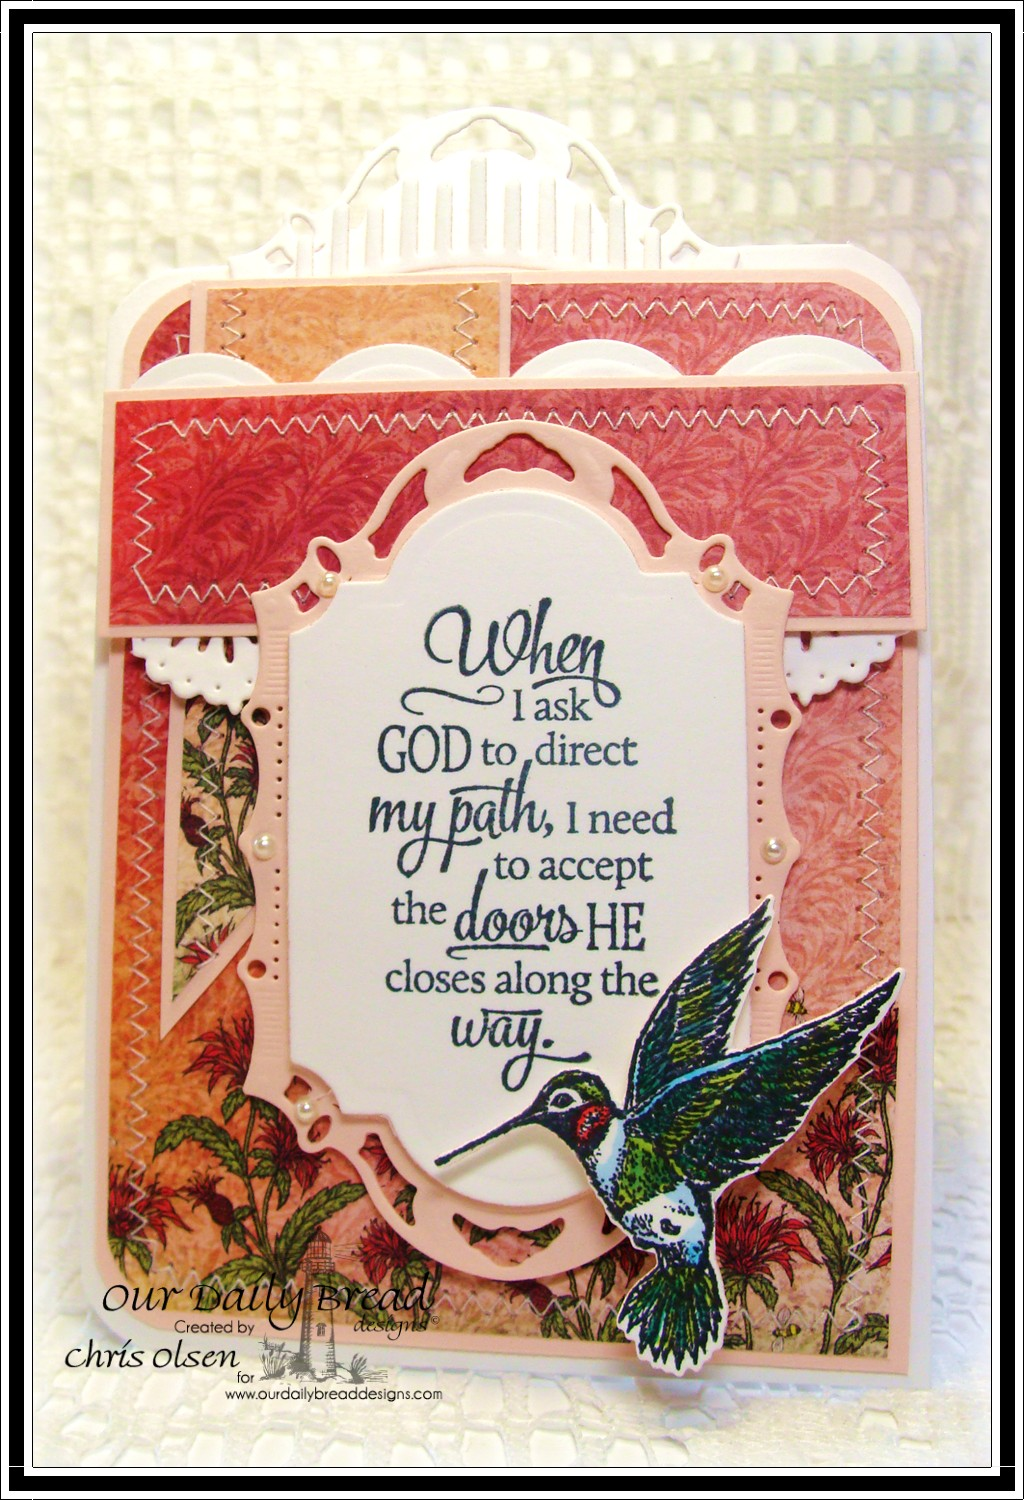 Stamps - Our Daily Bread Designs Sentiment Collection 3, Hummingbird, ODBD Blooming Garden Paper Collection, ODBD Custom Hummingbird Die, ODBD Custom Beautiful Borders Dies